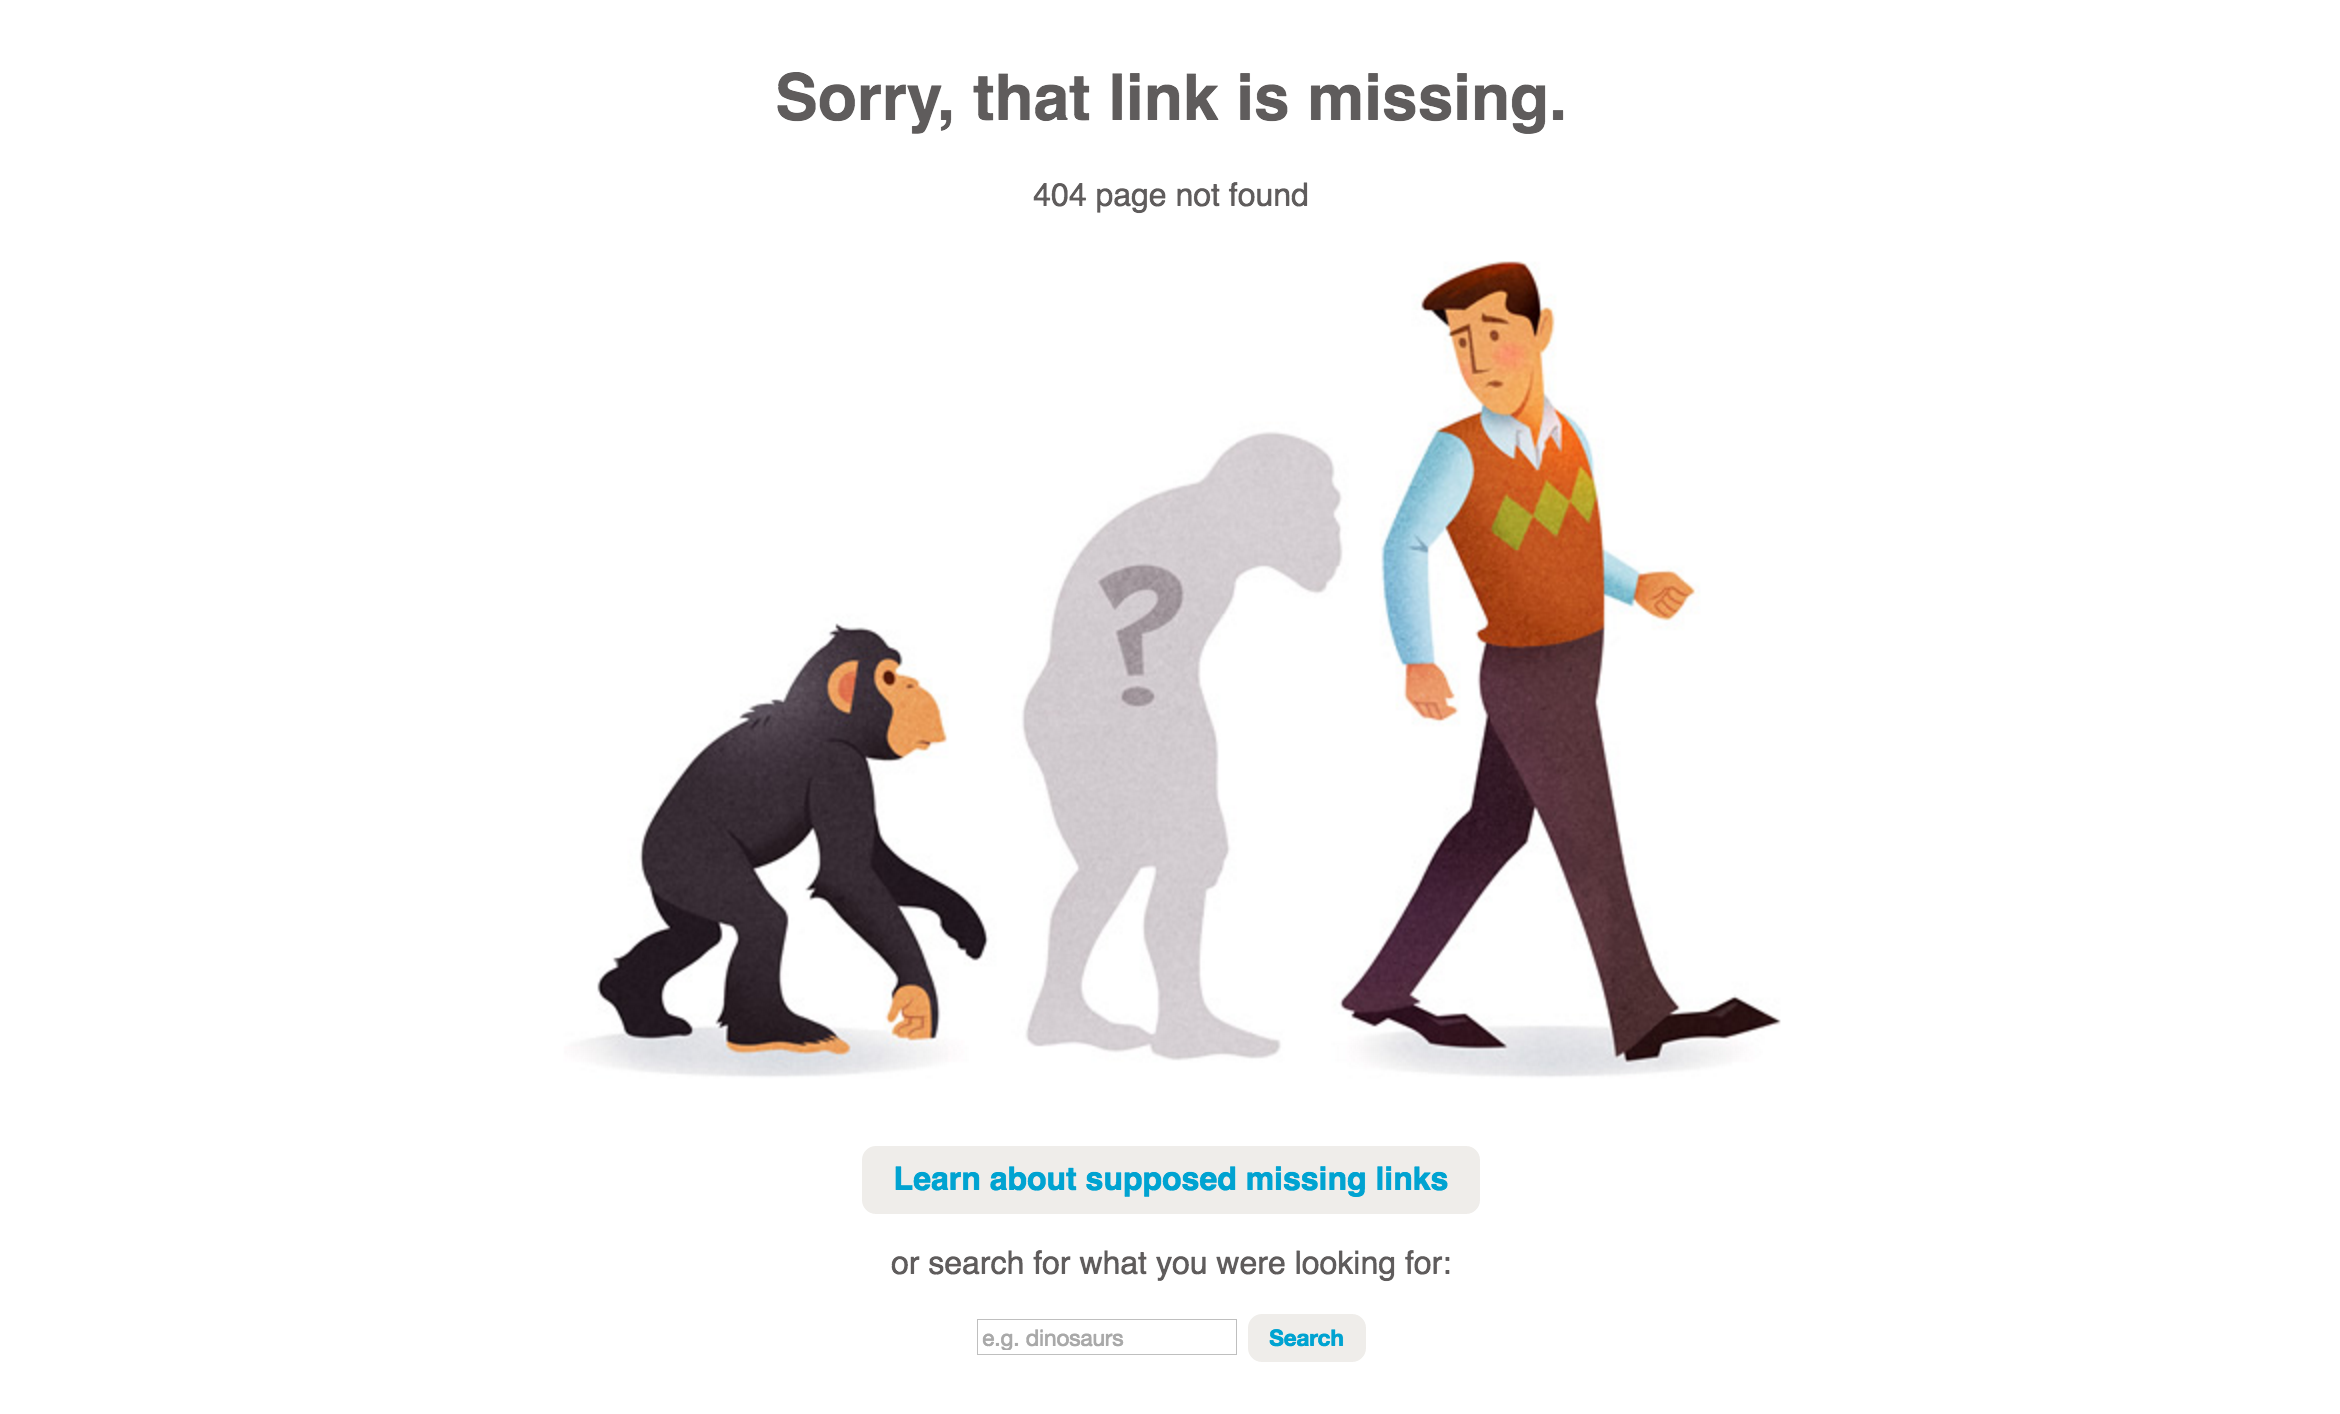 AiG404Page